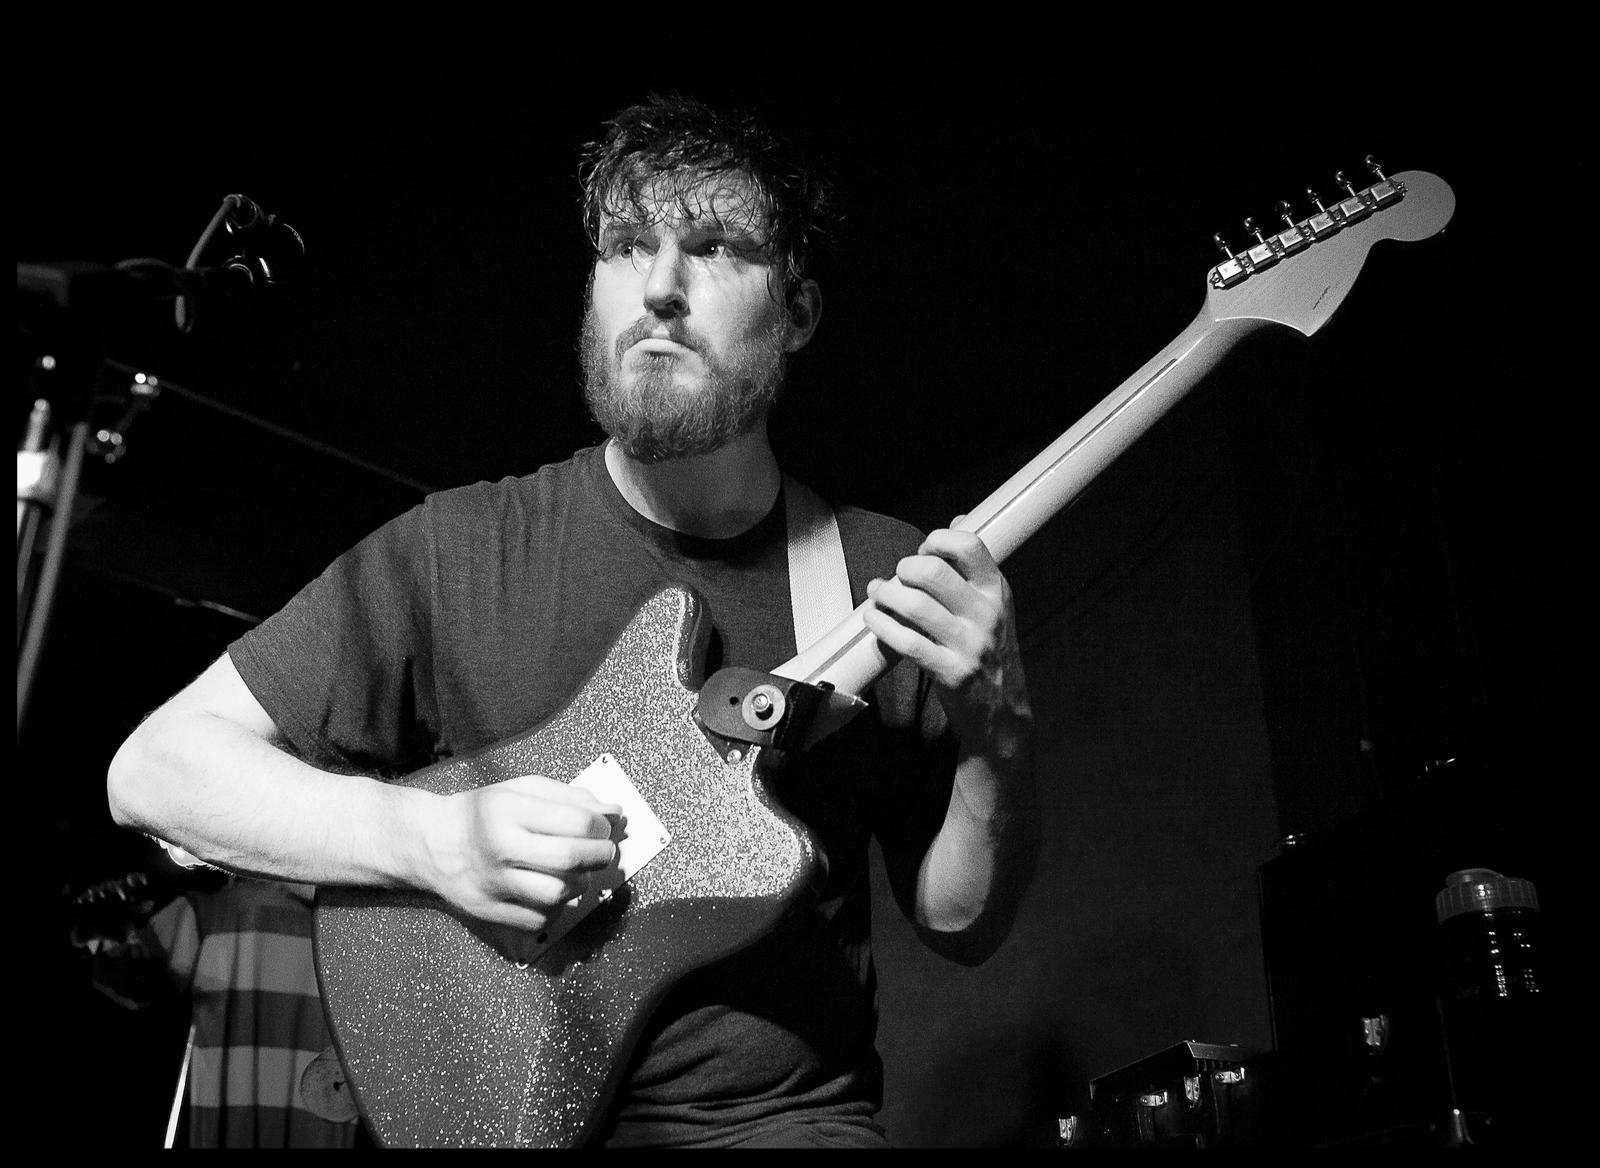 Nick Reinhart has emerged in a short amount of time as a true innovator in the art of guitar wrangling. Unlike most guitarists, his focus isn't primarily on the fretboard, but rather in using the entire chain of elements that comprise a guitar sound: fingers, feet, pedals, amps and whatever else he comes into contact with in the process.